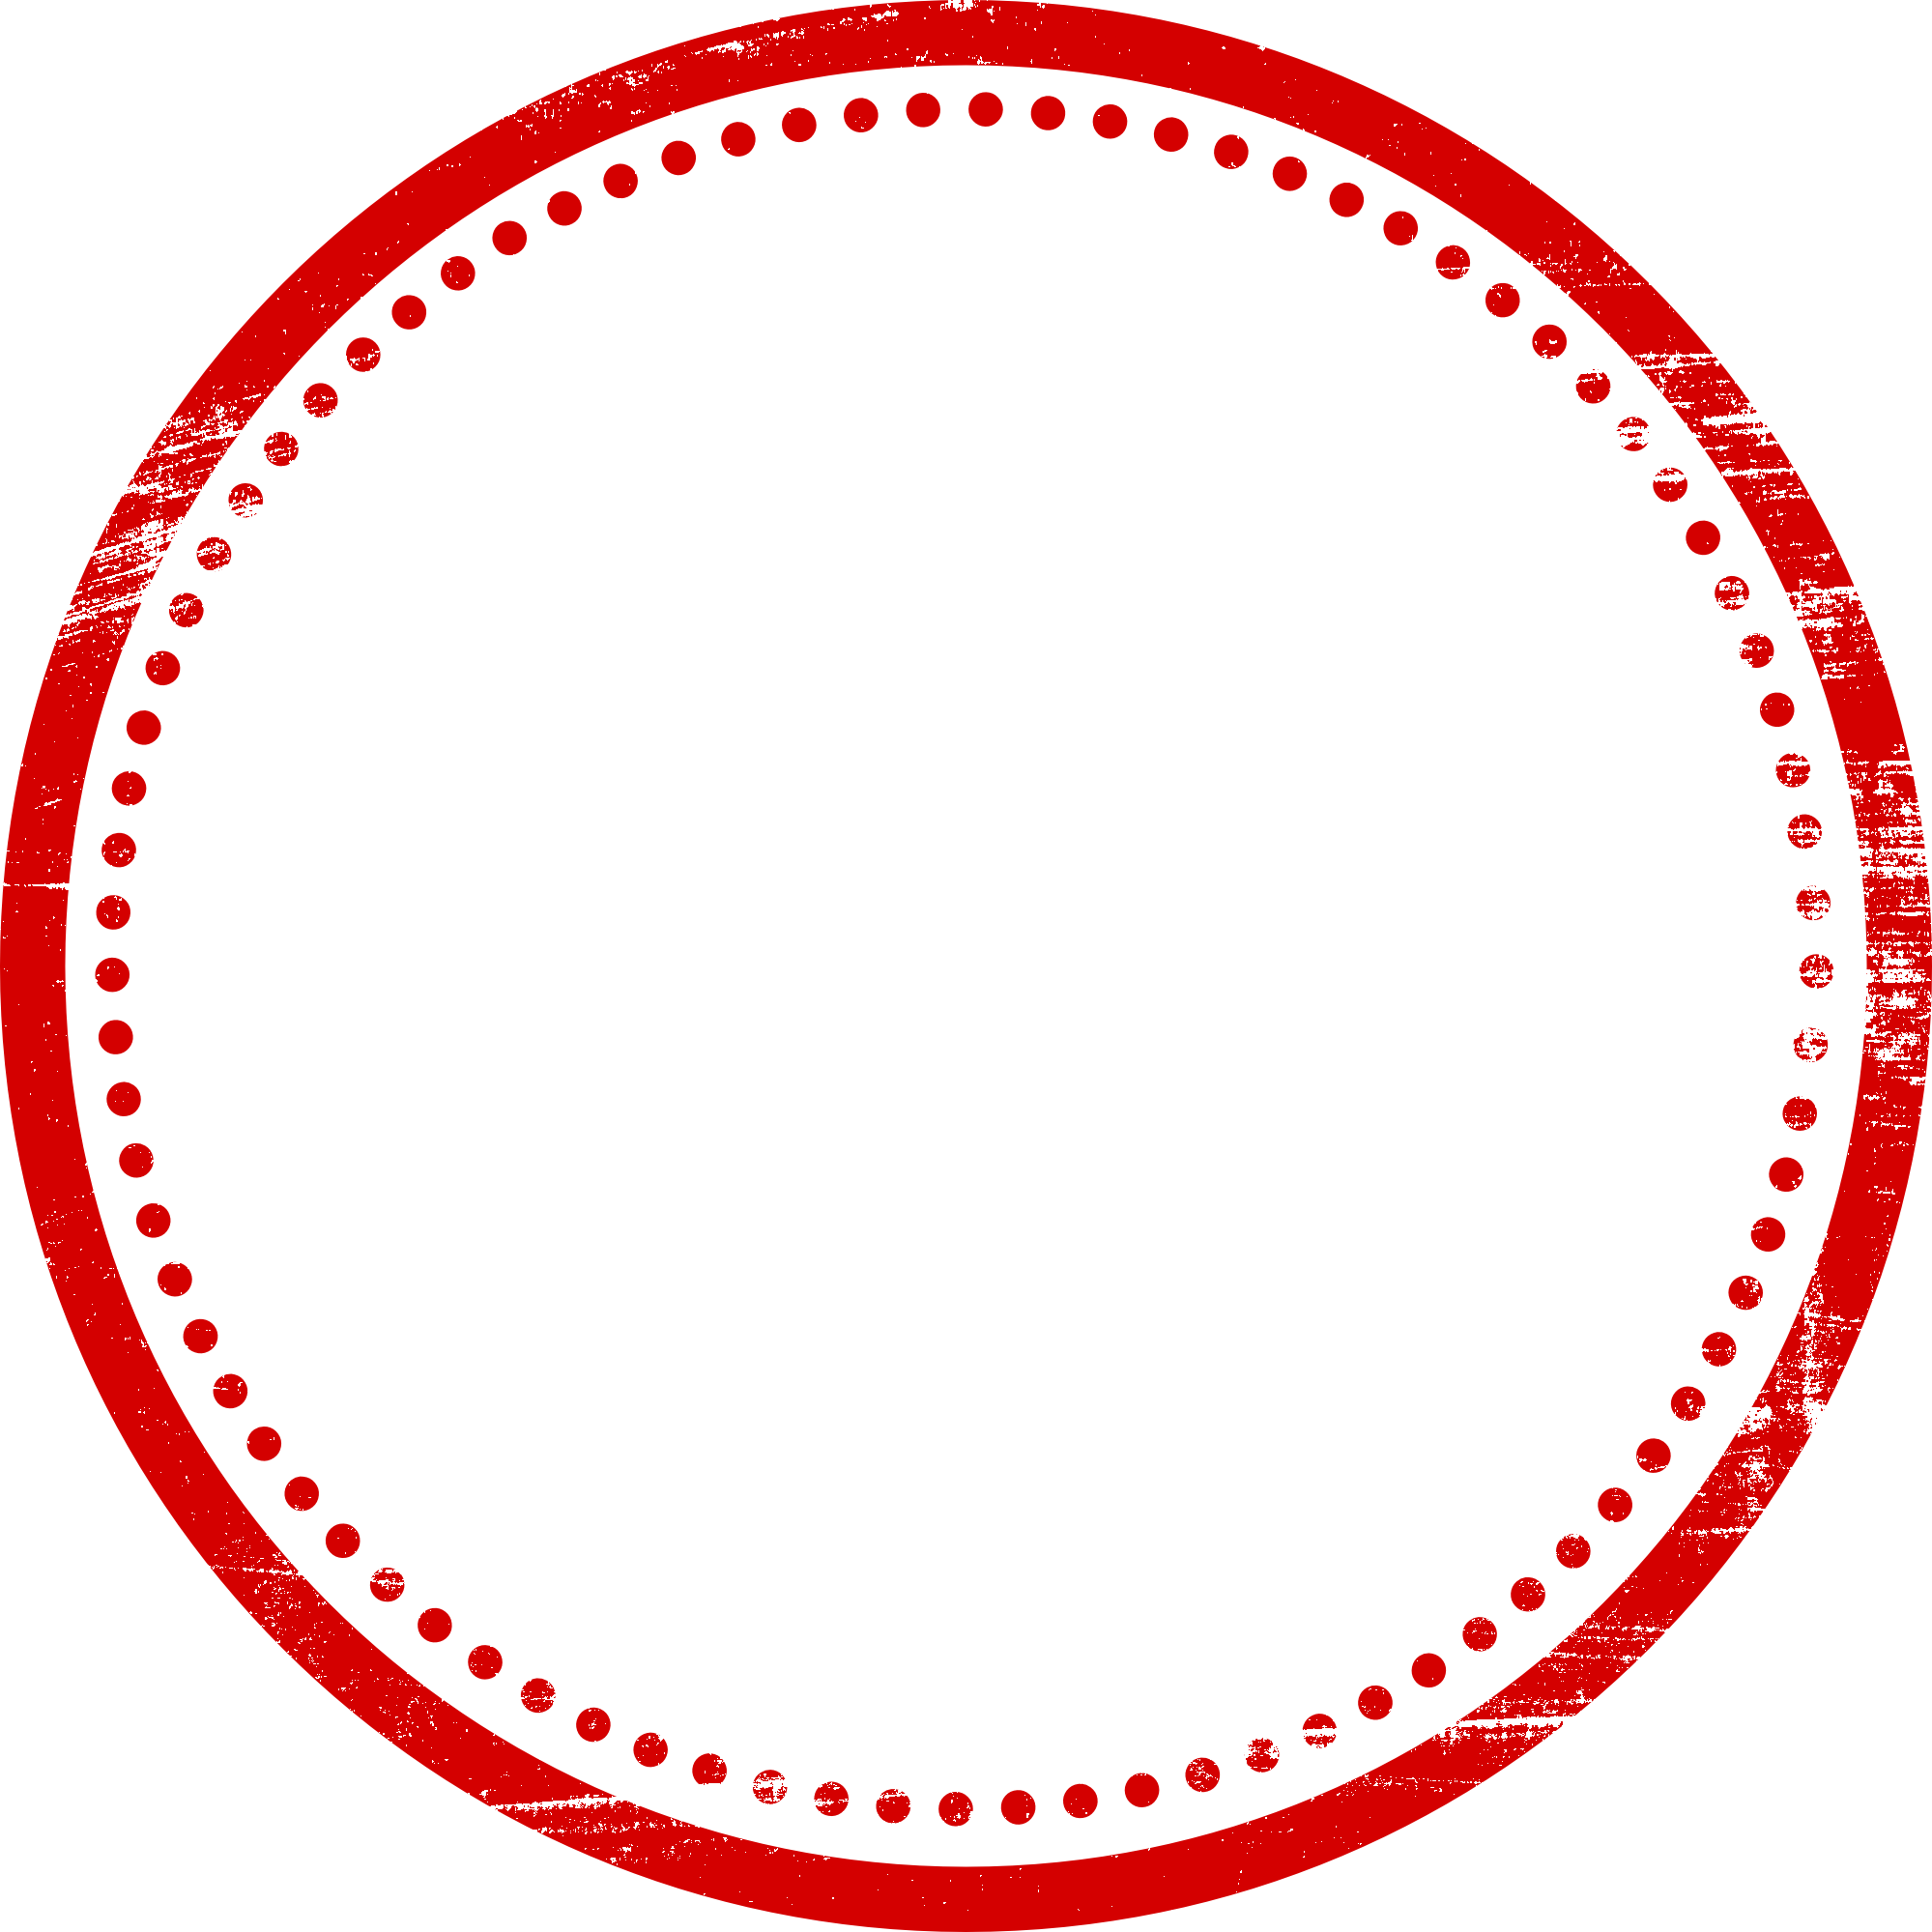 Circle stamp png. Red empty vector